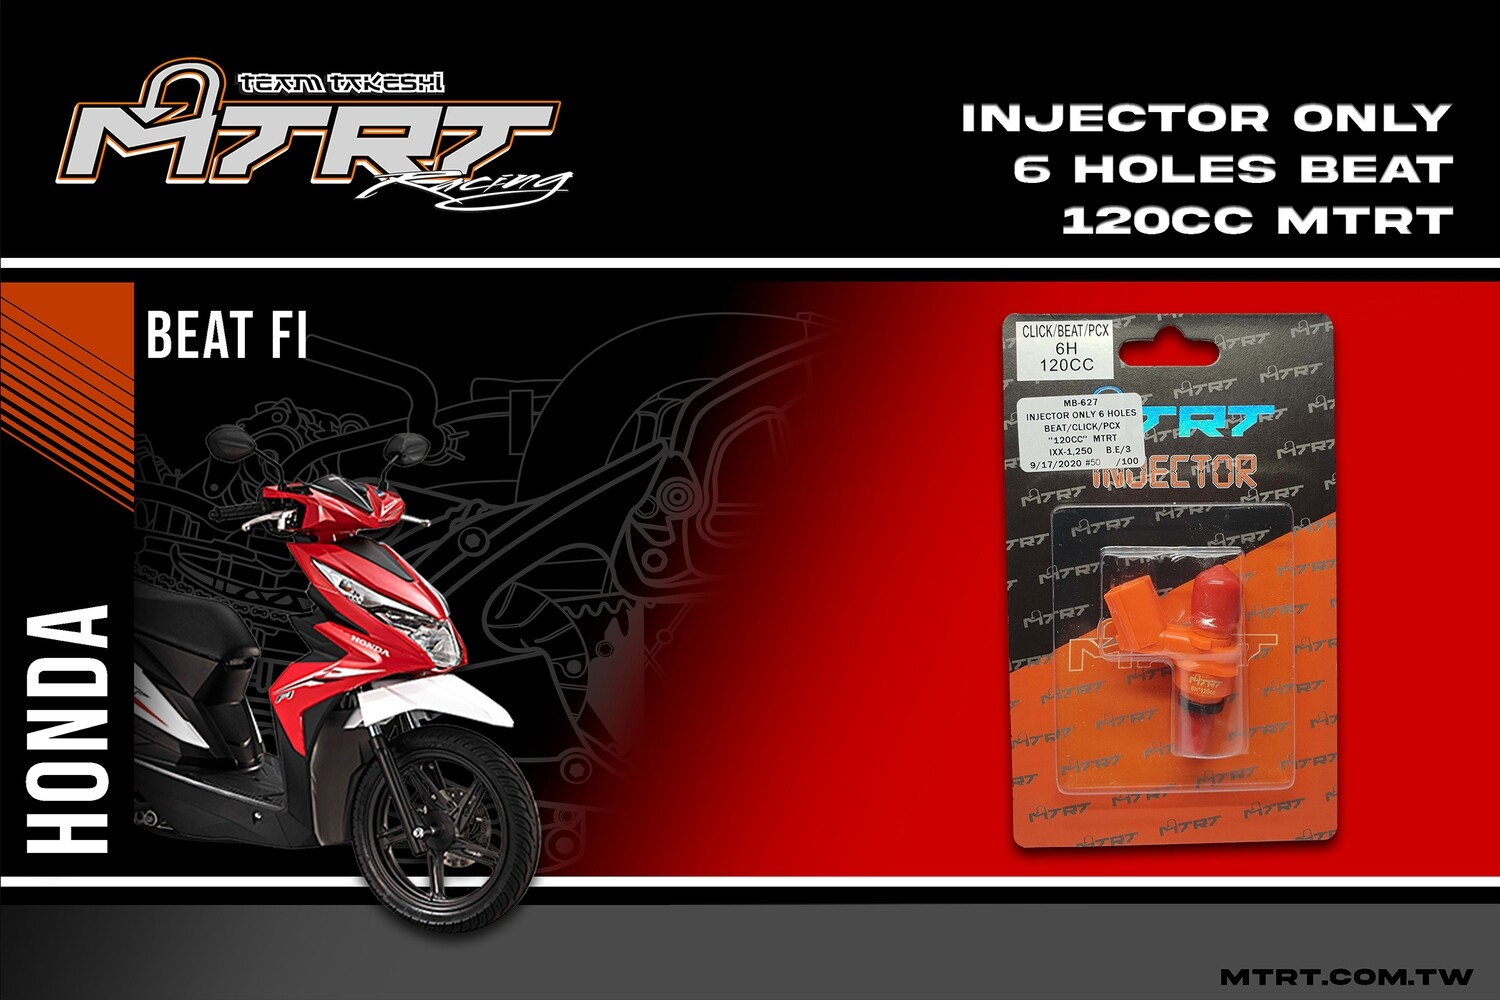 INJECTOR ONLY 6HOLES BEAT CLICK PCX 120CC MTRT